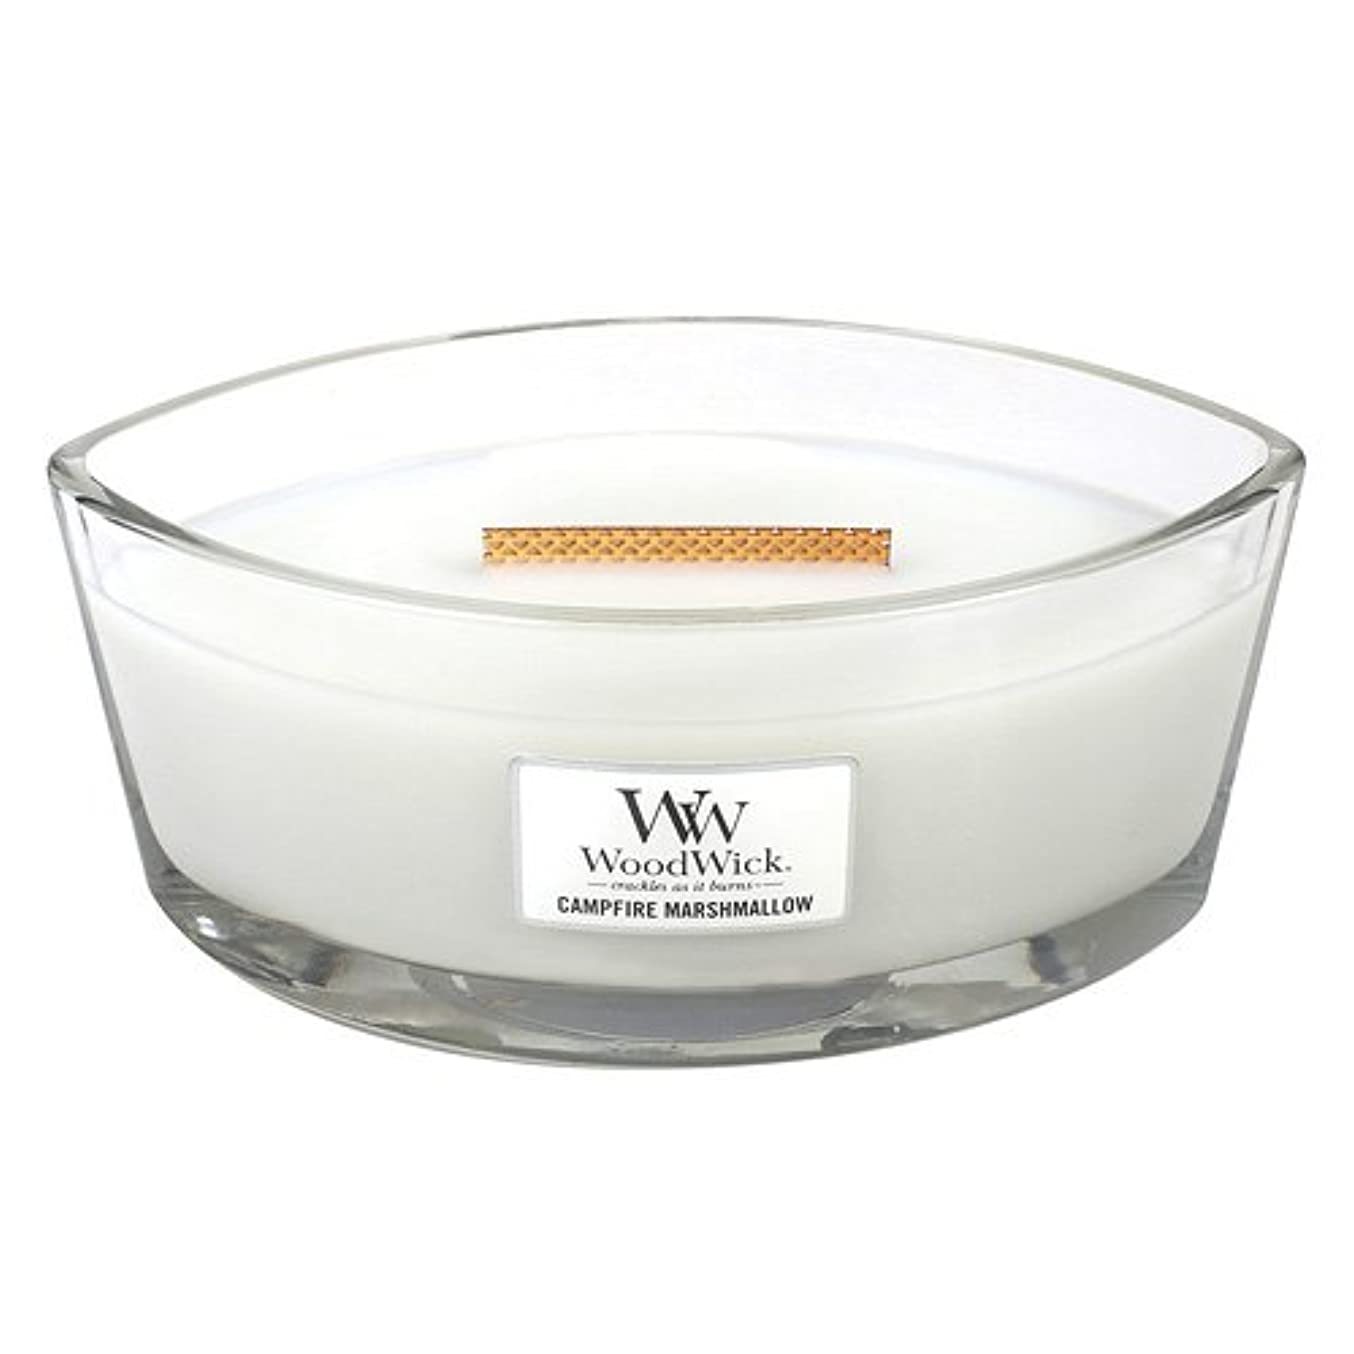 Campfire Marshmallow HearthWick Flame Large Scented Candle by WoodWick